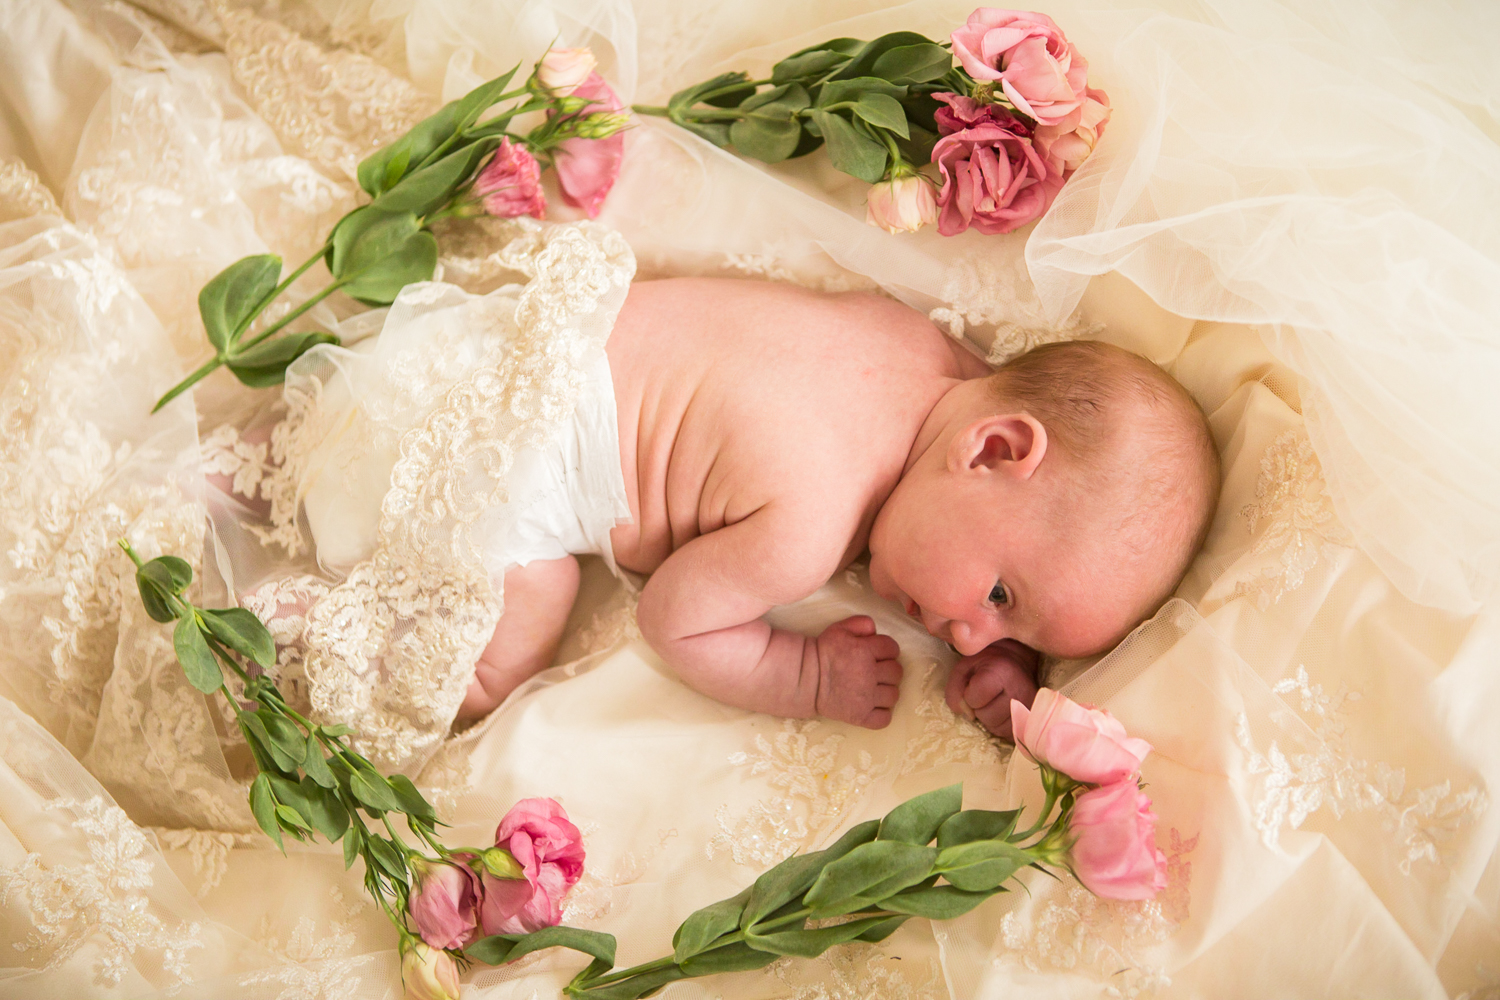 baby wrapped in mummys wedding dress during a baby photoshoot in chandlers ford